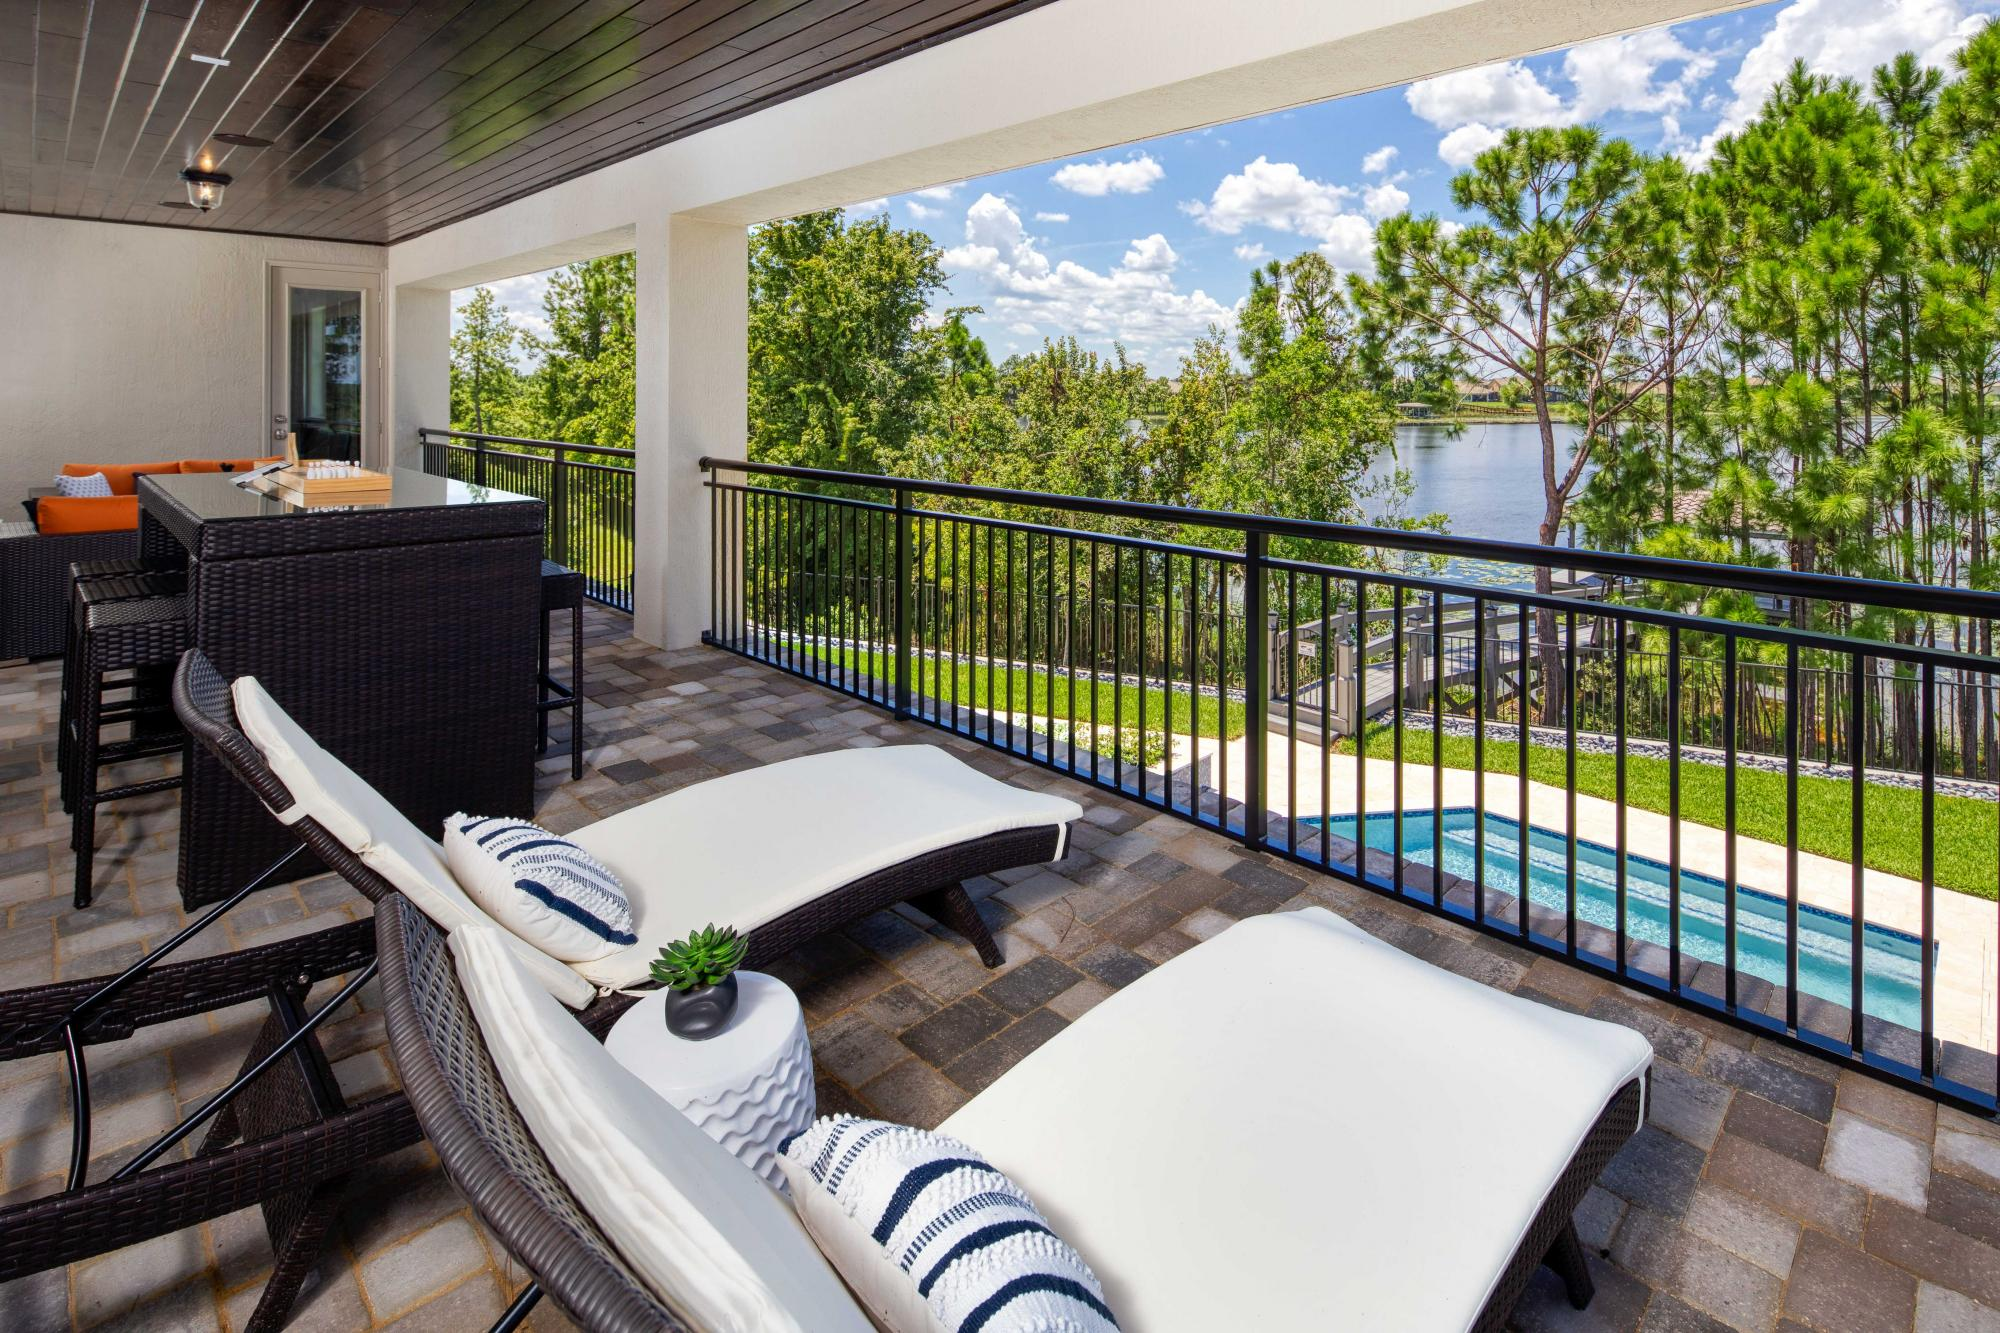 976251701824367_avalon_cove_balcony